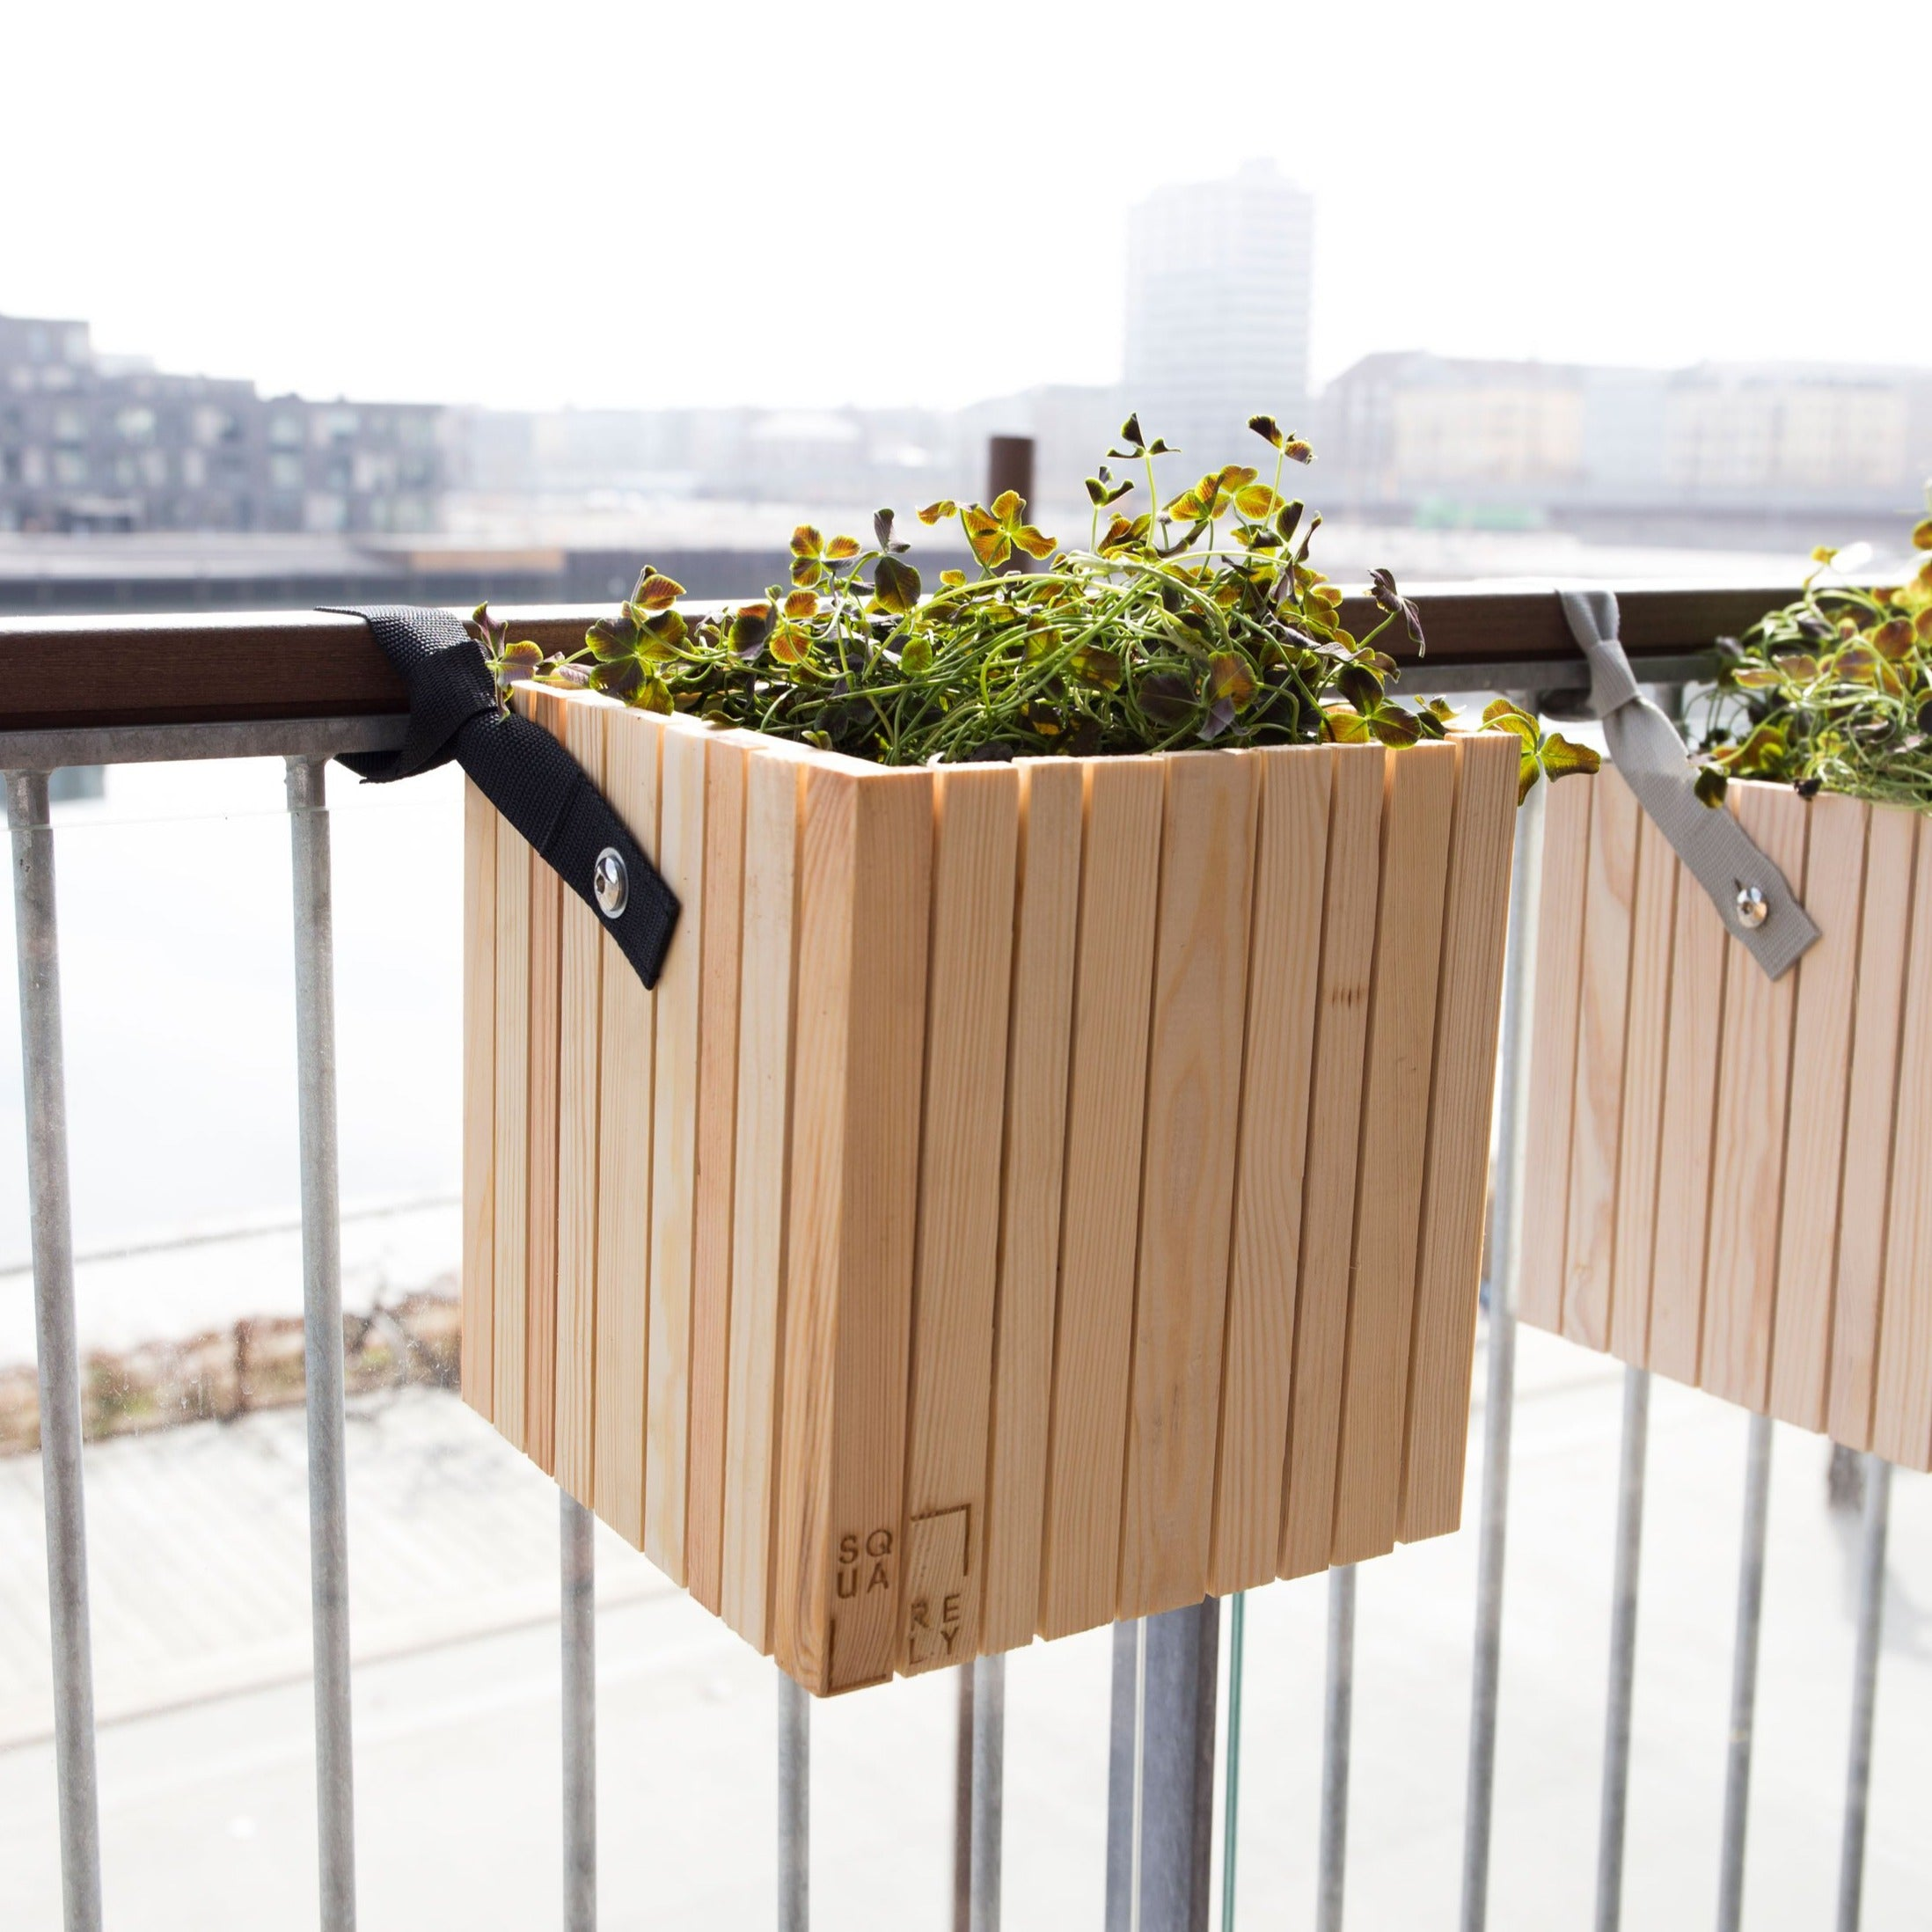 "SQUARELY's design planter ""GrowOn HoldOn Natural Ash"" on a balcony. GrowOn HoldOn is SQUARELY's smaller, wooden, sustainable design planter with self-watering system."